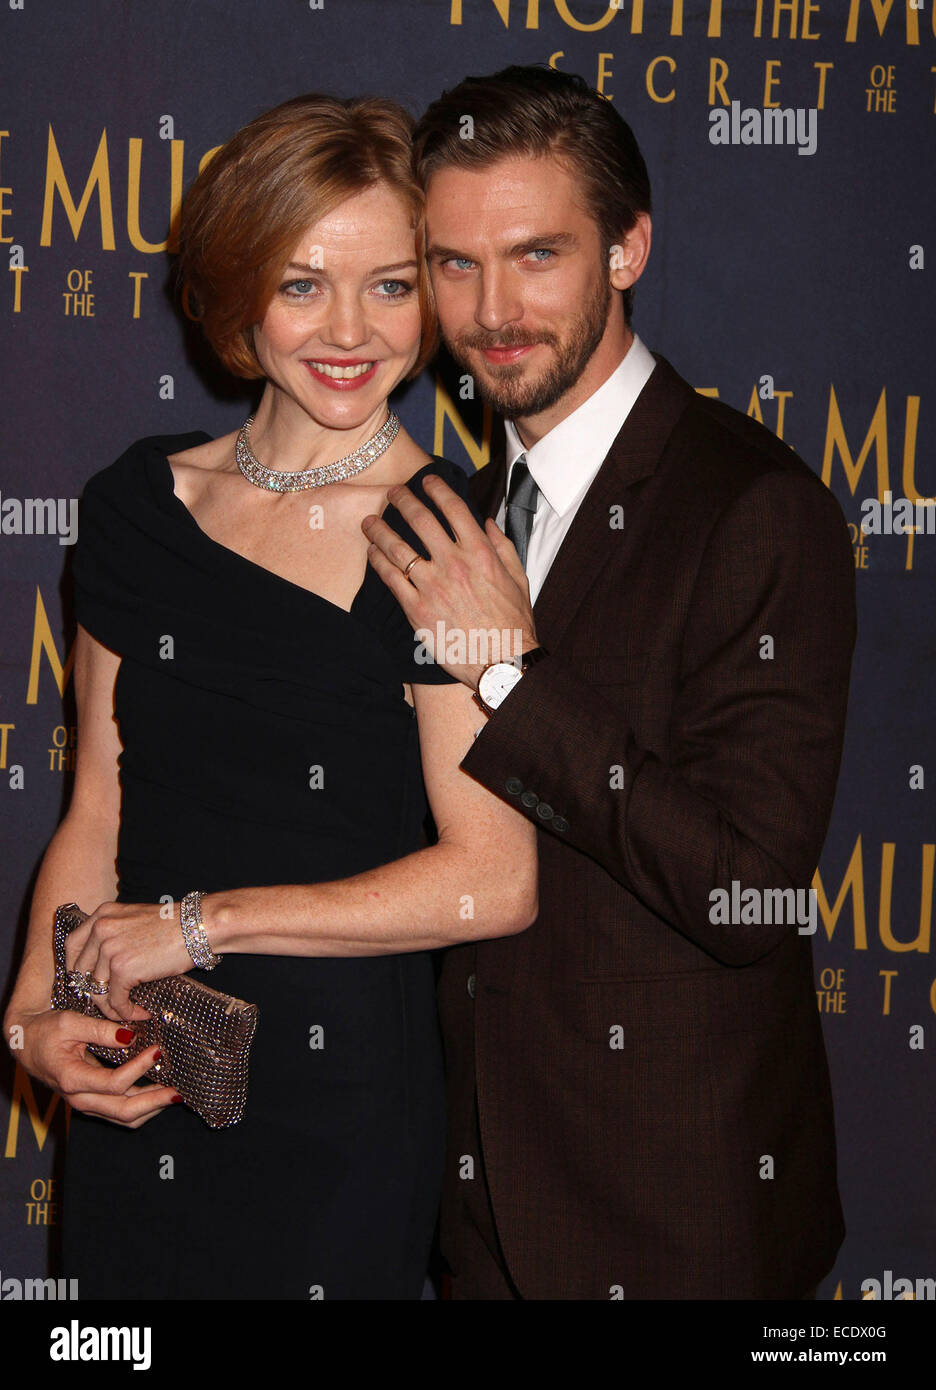 New York New York Usa 11th Dec 2014 Actor Dan Stevens And Susie Stock Photo Alamy Dan stevens wife susie hariet was born in south africa. https www alamy com stock photo new york new york usa 11th dec 2014 actor dan stevens and susie hariet 76523120 html